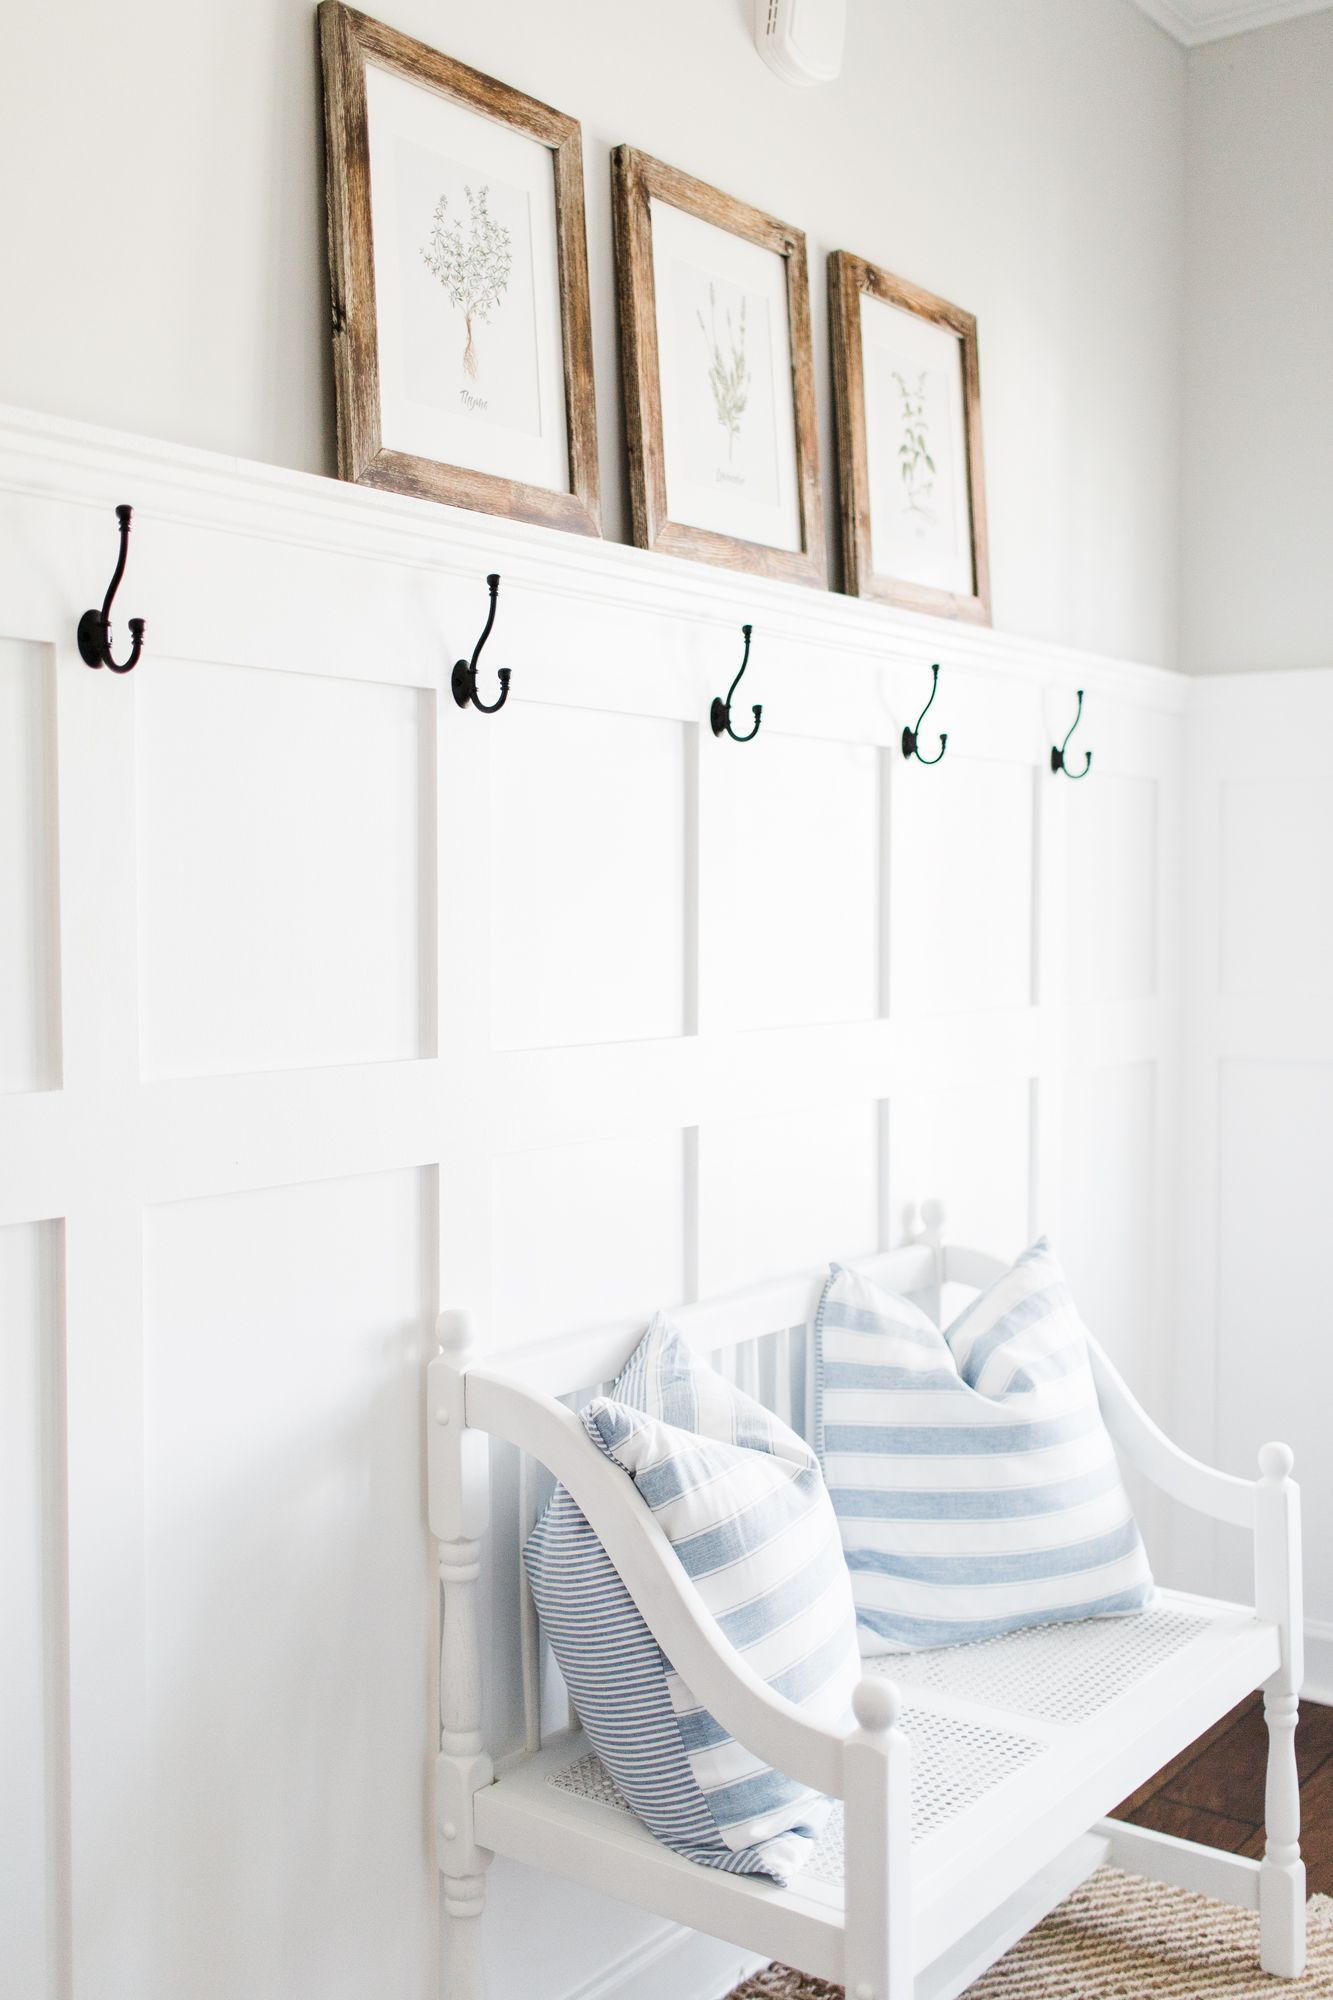 Modern Farmhouse Entryway Reveal | I honestly couldn't wait to finish the entire board and batten tutorial before sharing some of these pictures. Don't worry, the step-by-step tutorial is headed your way! Our entry way feels so cozy and inviting , and the decor can be easily changed with the seasons. #boardandbattenwall